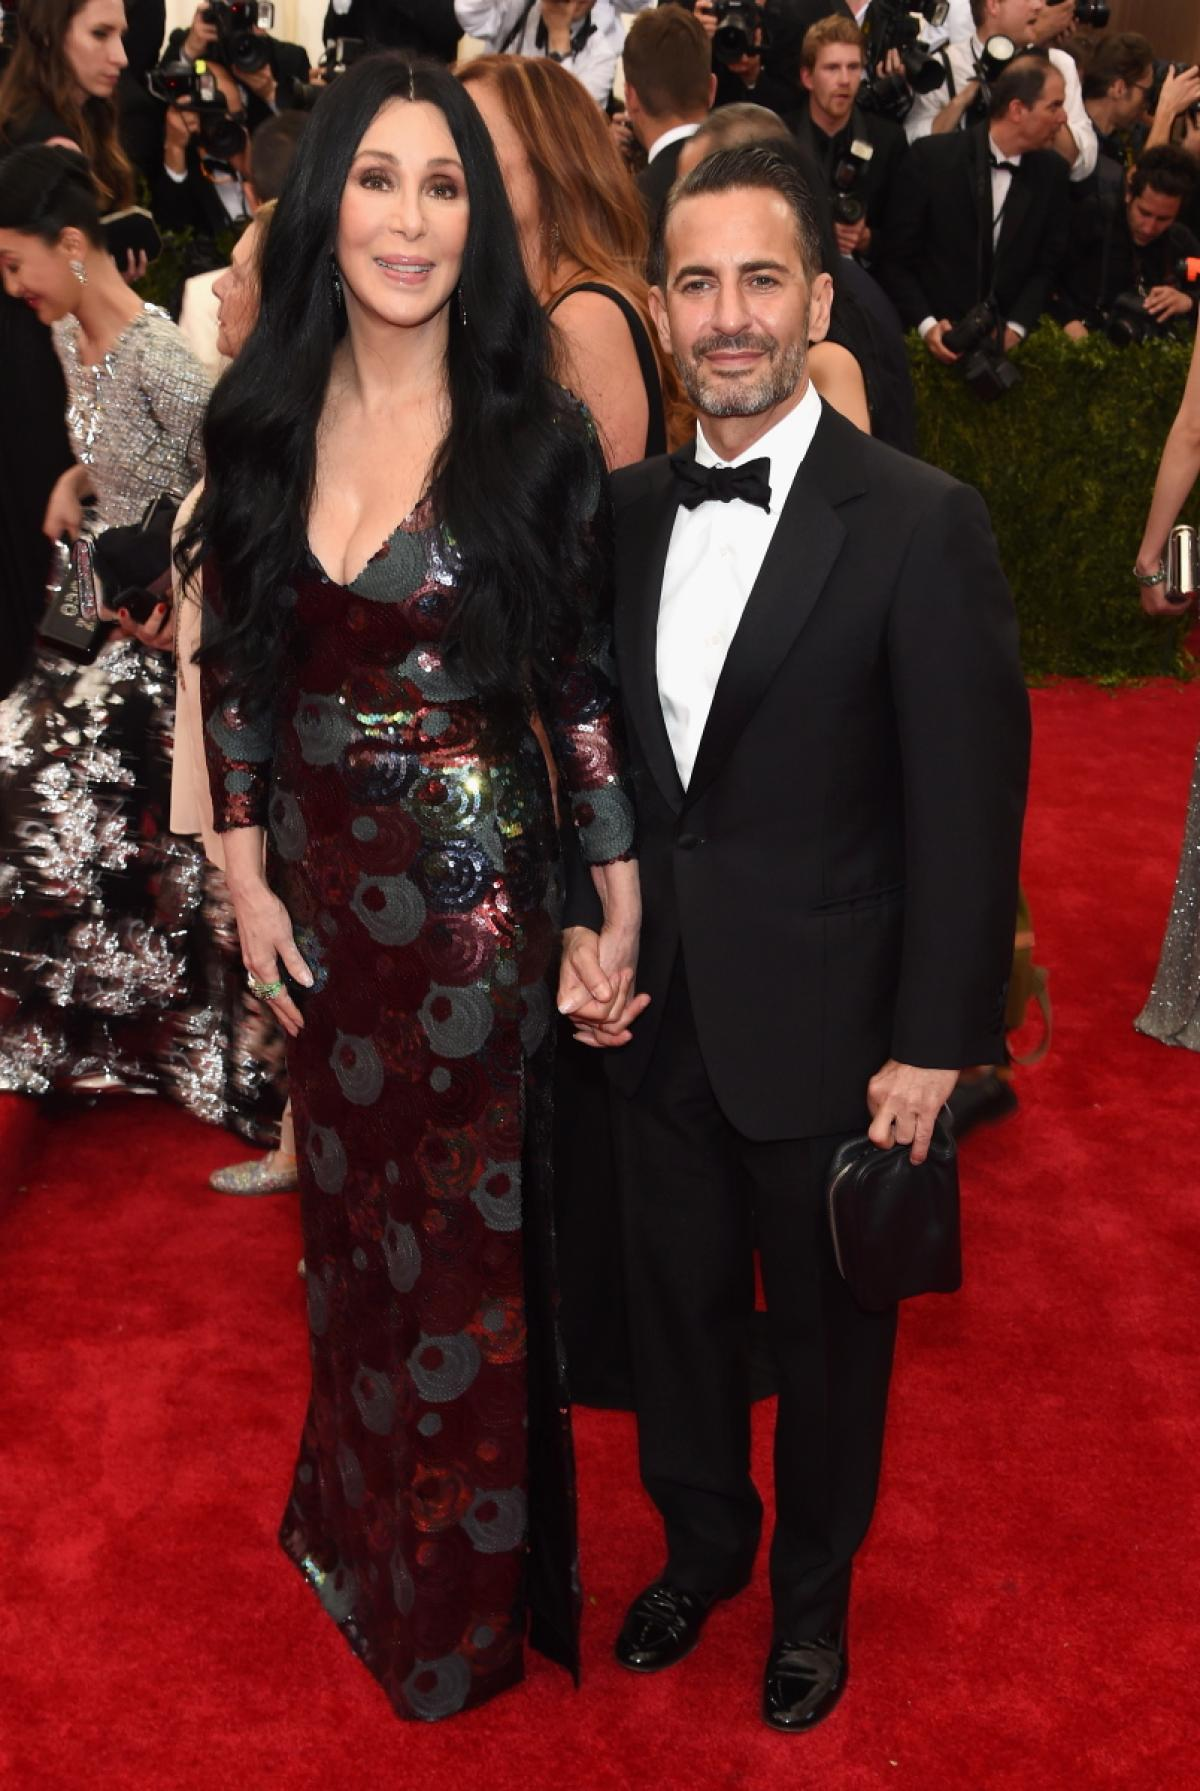 cher marc jacobs met photo